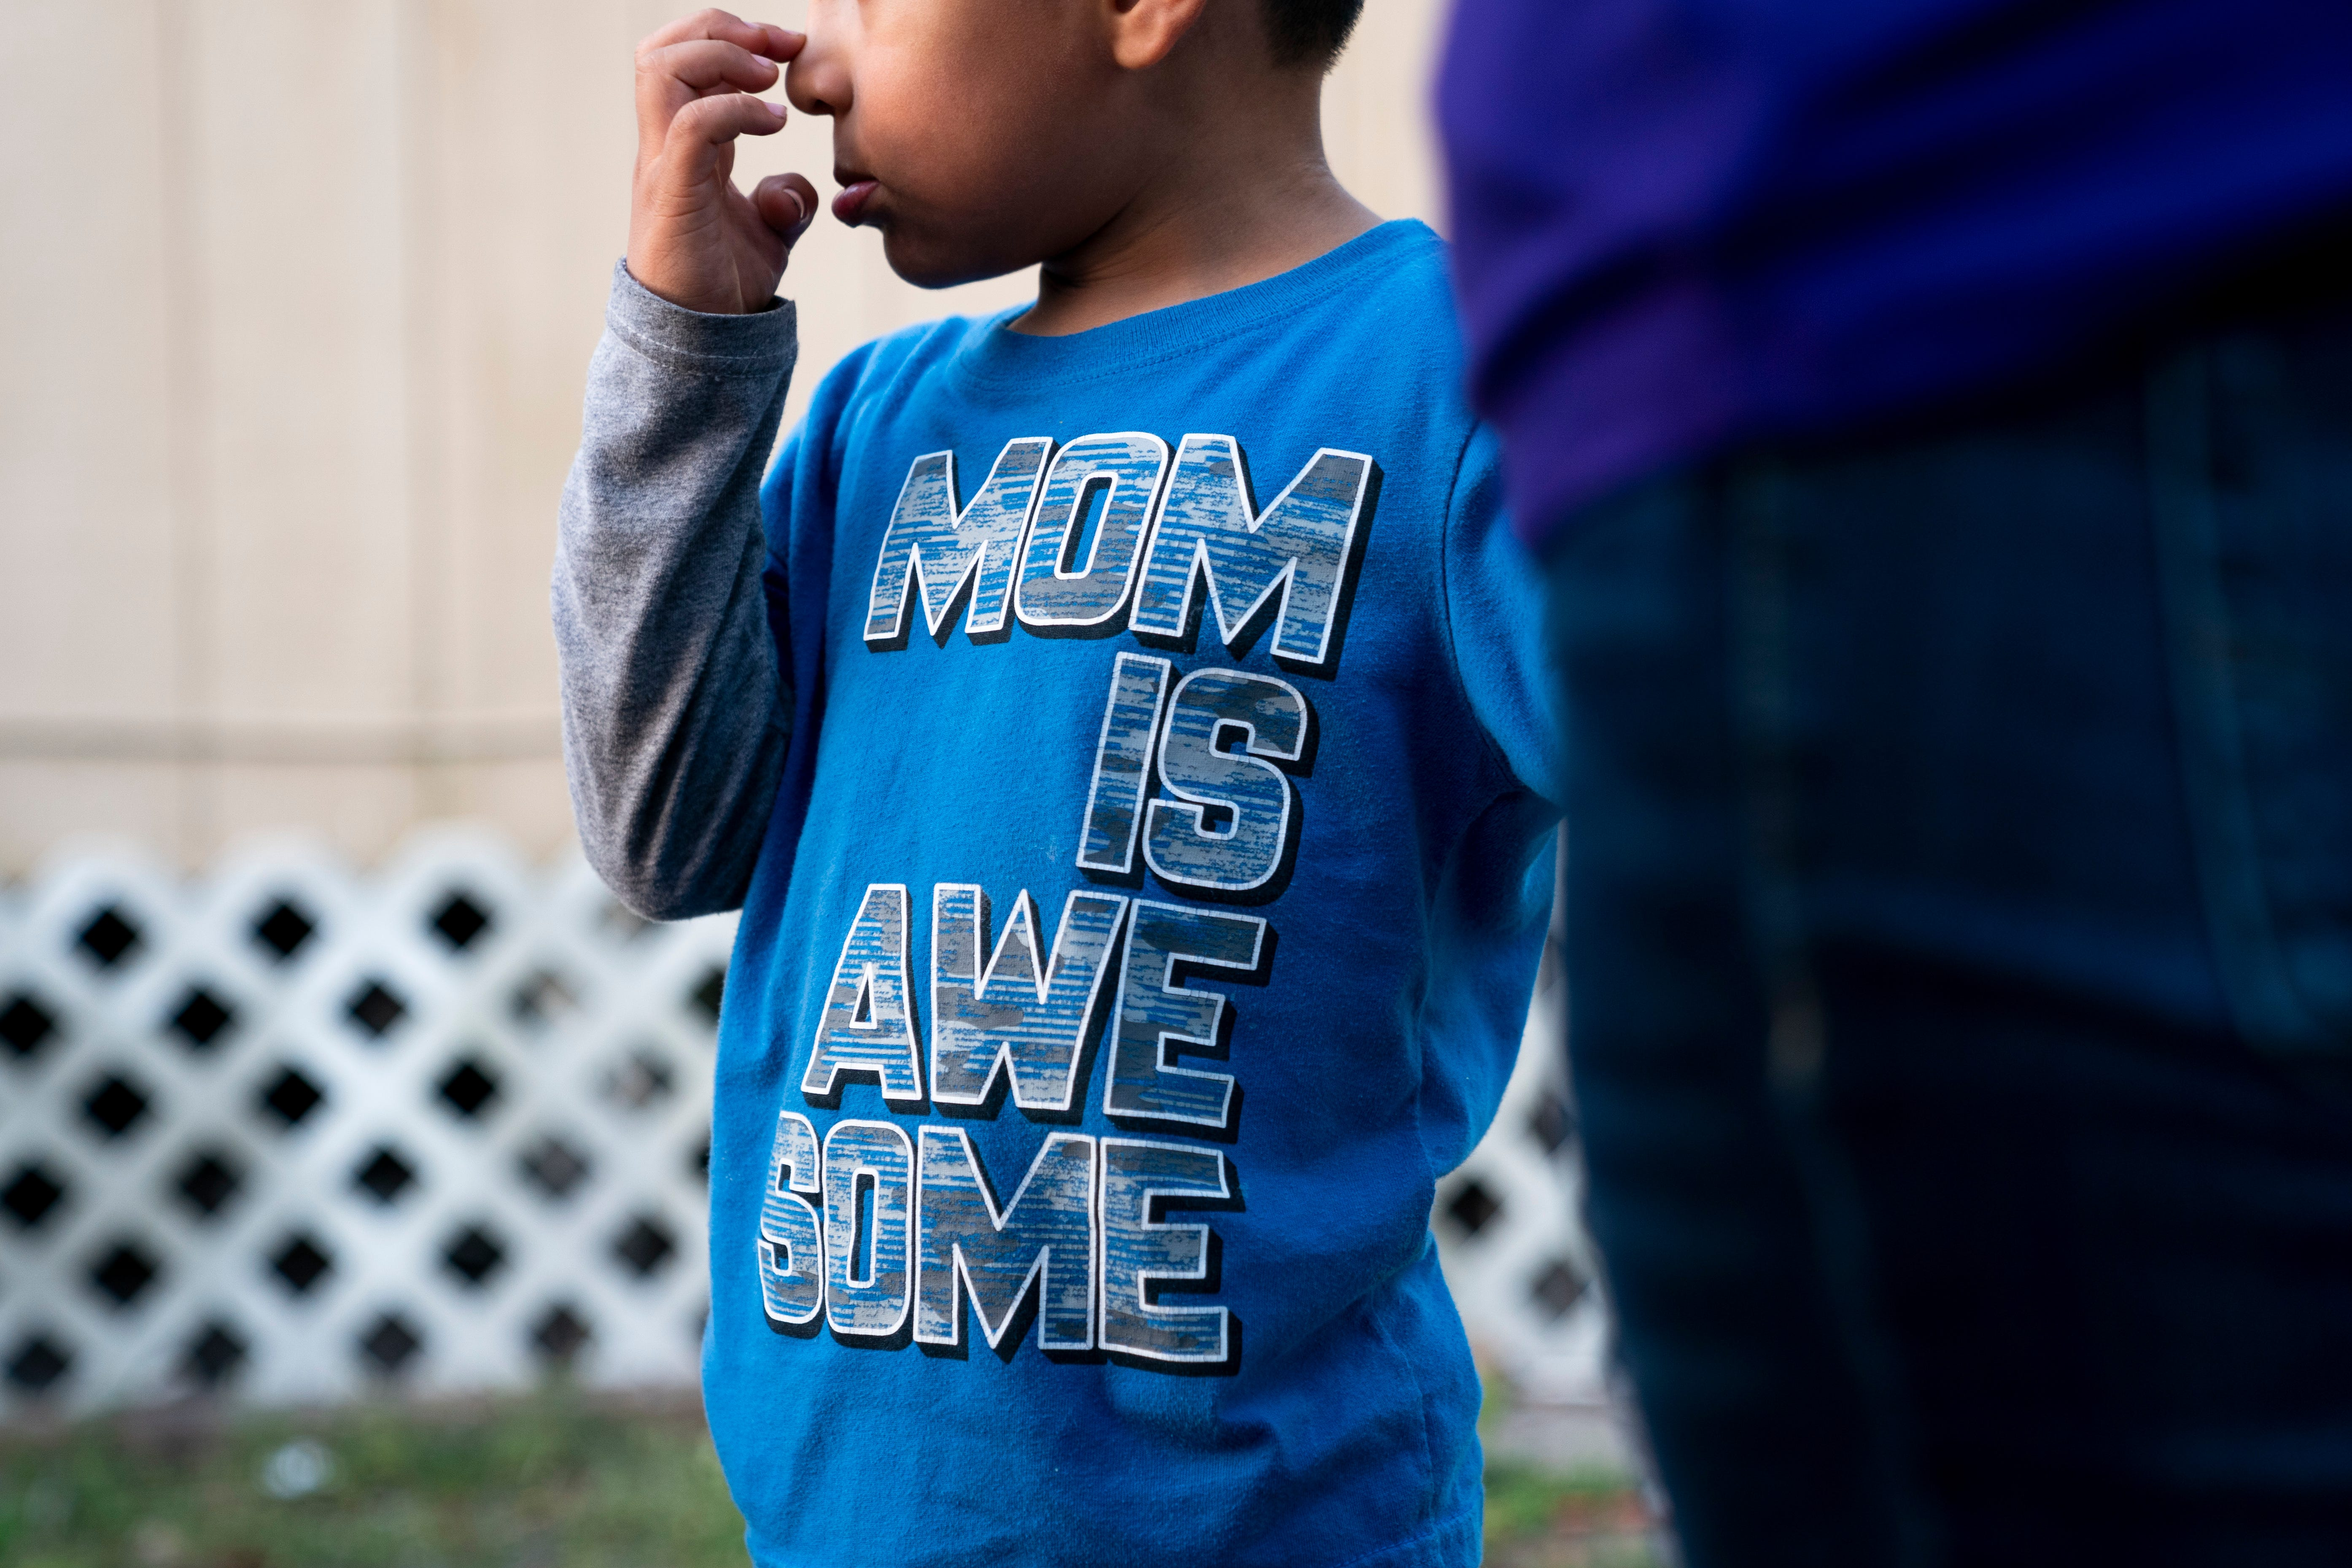 Juliana's son stands with her outside their home in Immokalee. Juliana is an undocumented farmworker, and her family has struggled financially during the pandemic because of limited work and family members contracting COVID-19.